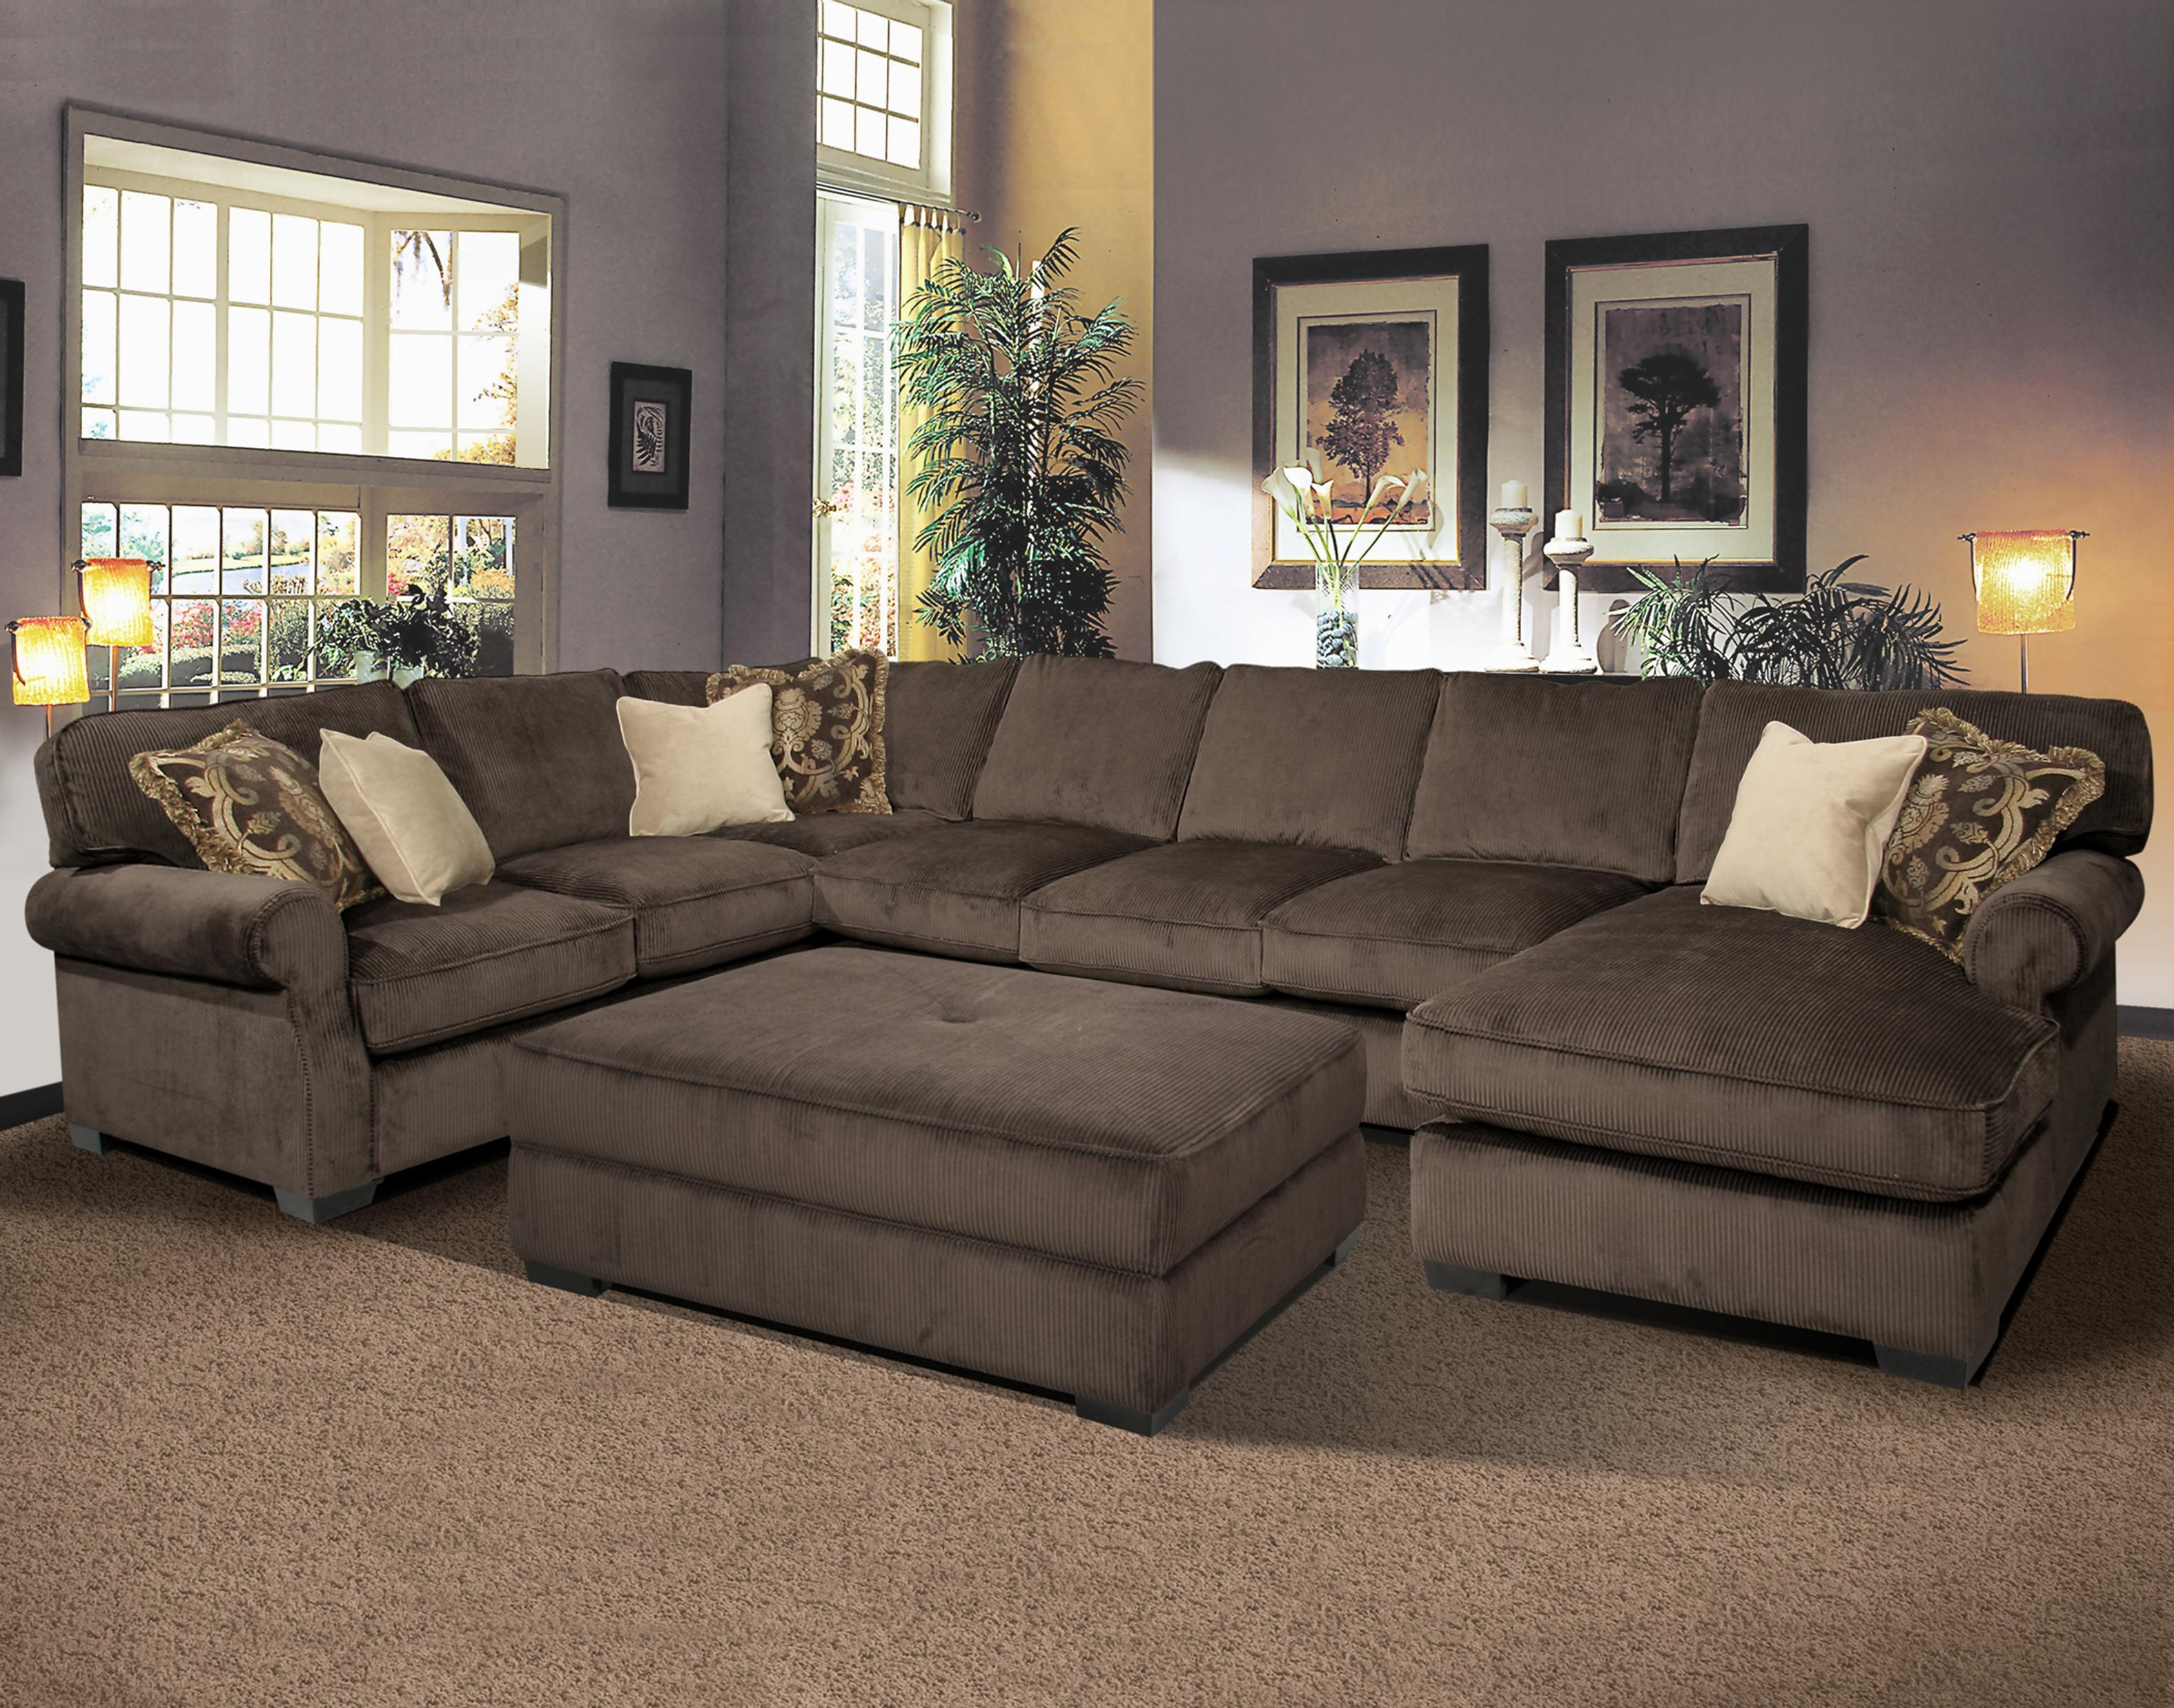 pictures of sofas sofa slip covers in india 20 best large comfortable sectional ideas